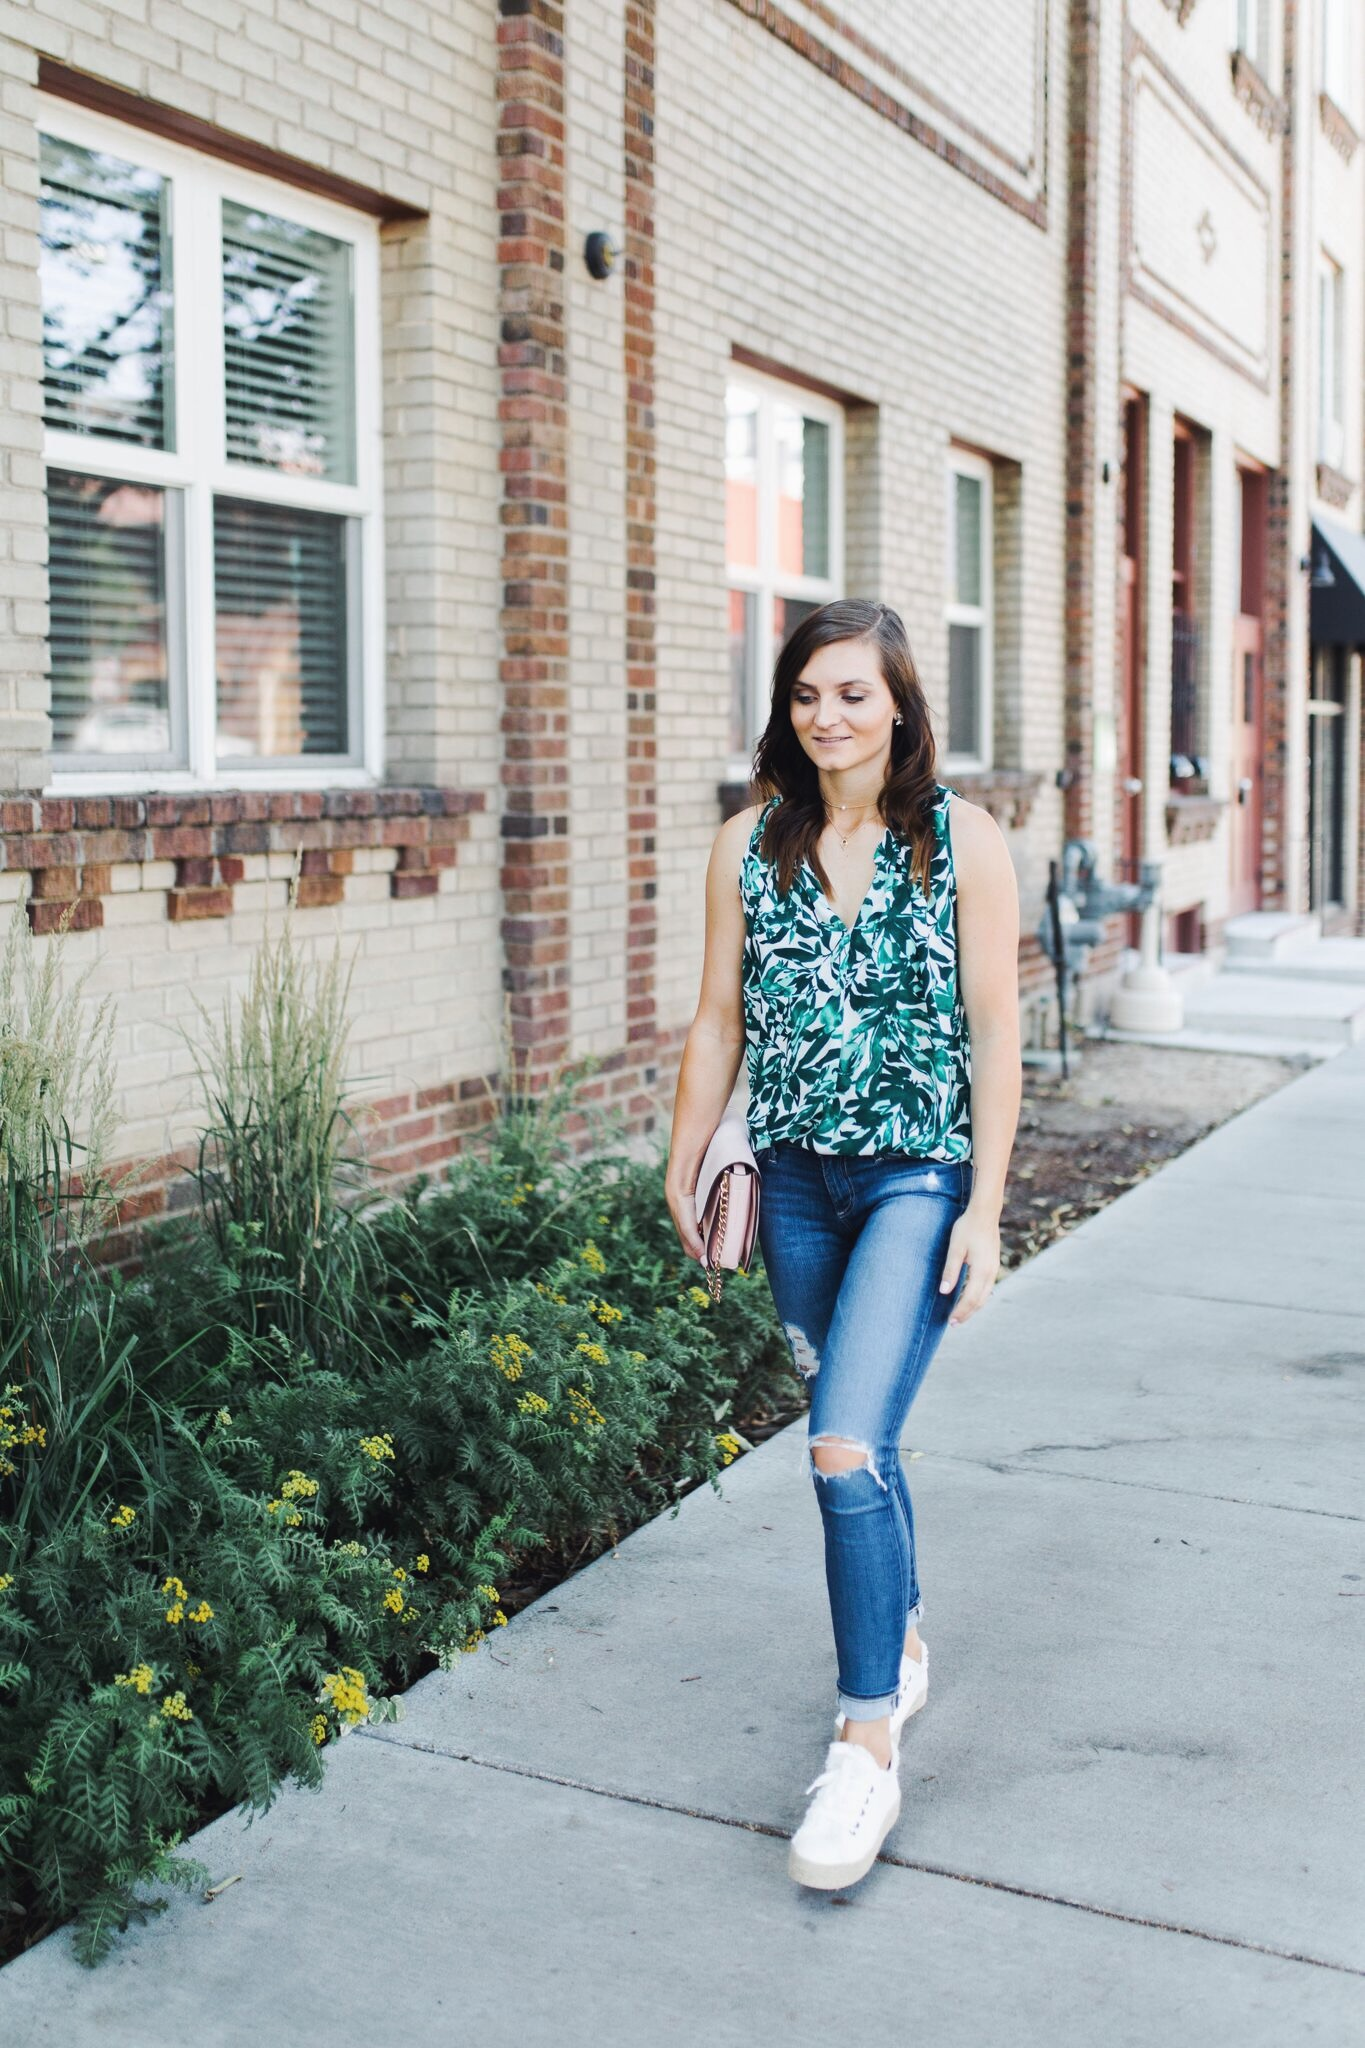 """<img src= five-summer-pieces-to-have-in-your-closet.jpg"""" alt= """"fashion-blogger-walking-the-streets-of-denver-wearing-summer-essential-pieces-to-have-in-your-closet-bold-patterned-tank-top-blouse-white-espadrille-platform-sneakers-ag-adriano-goldschmied-11-year-swapmeet-distressed-skinny-jeans"""">"""